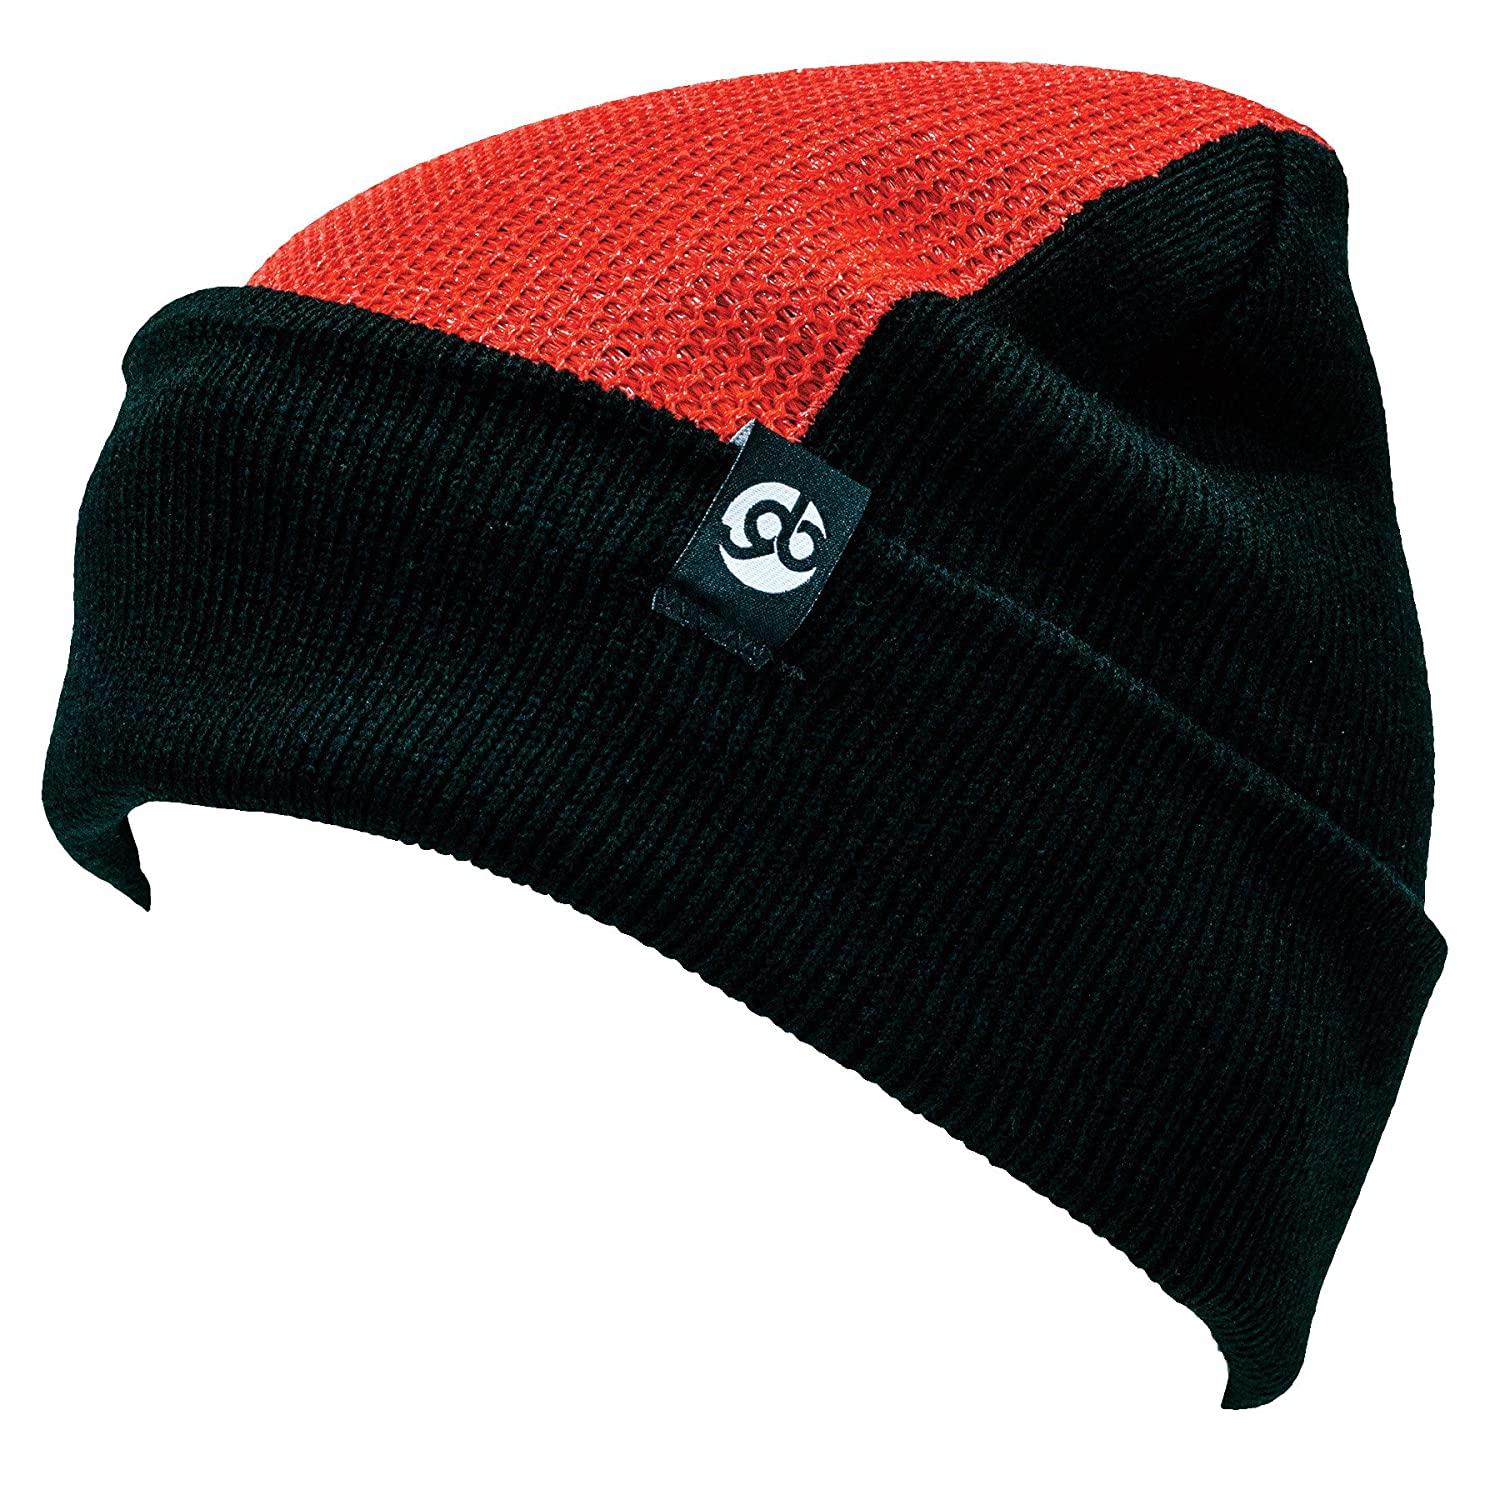 649e253bd Padded Headspin Beanie Elite - The Almighty Bboy Spin Cap